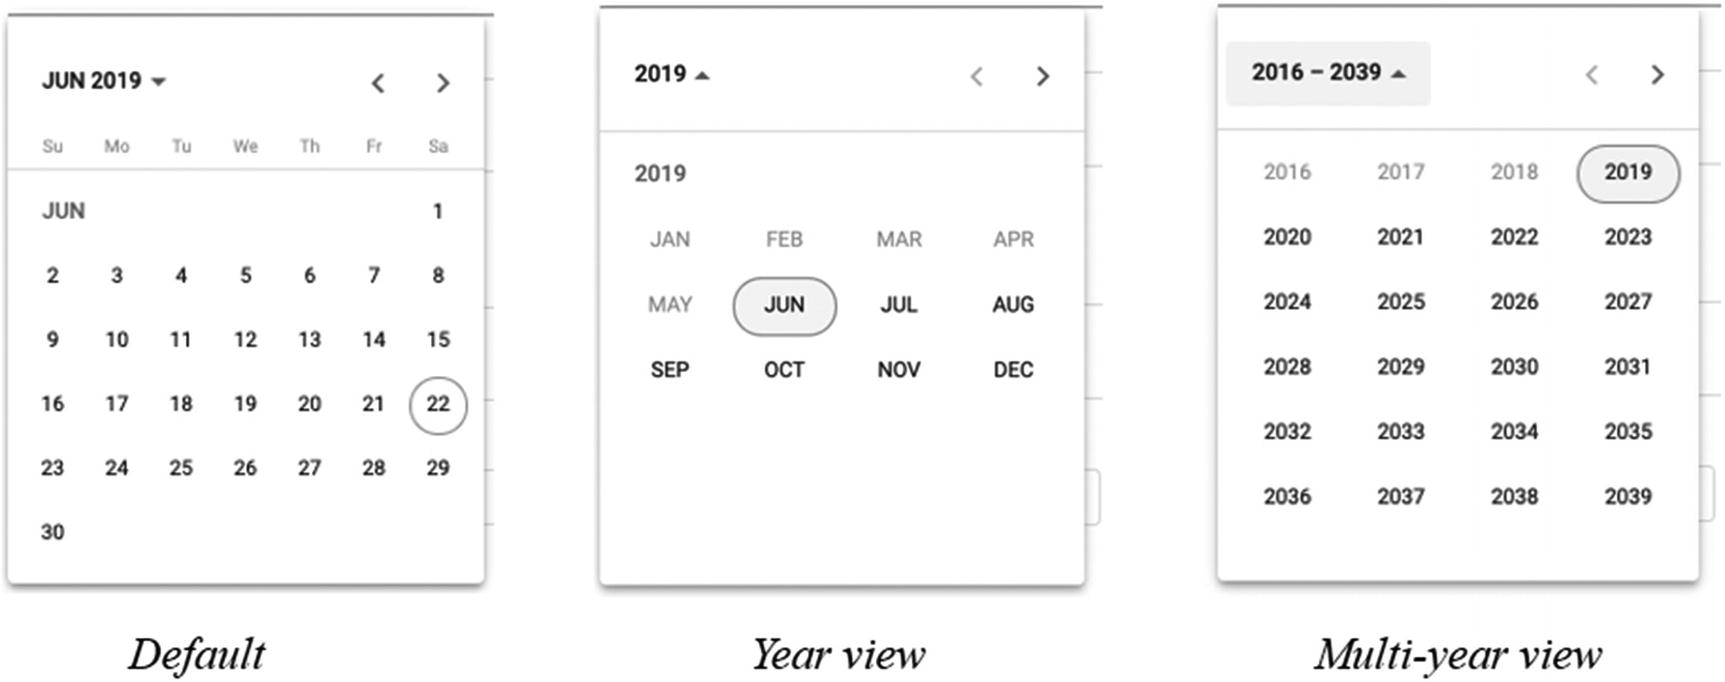 Material Design: Additional Form Fields | Springerlink intended for Pdf Form Calendar Date Picker